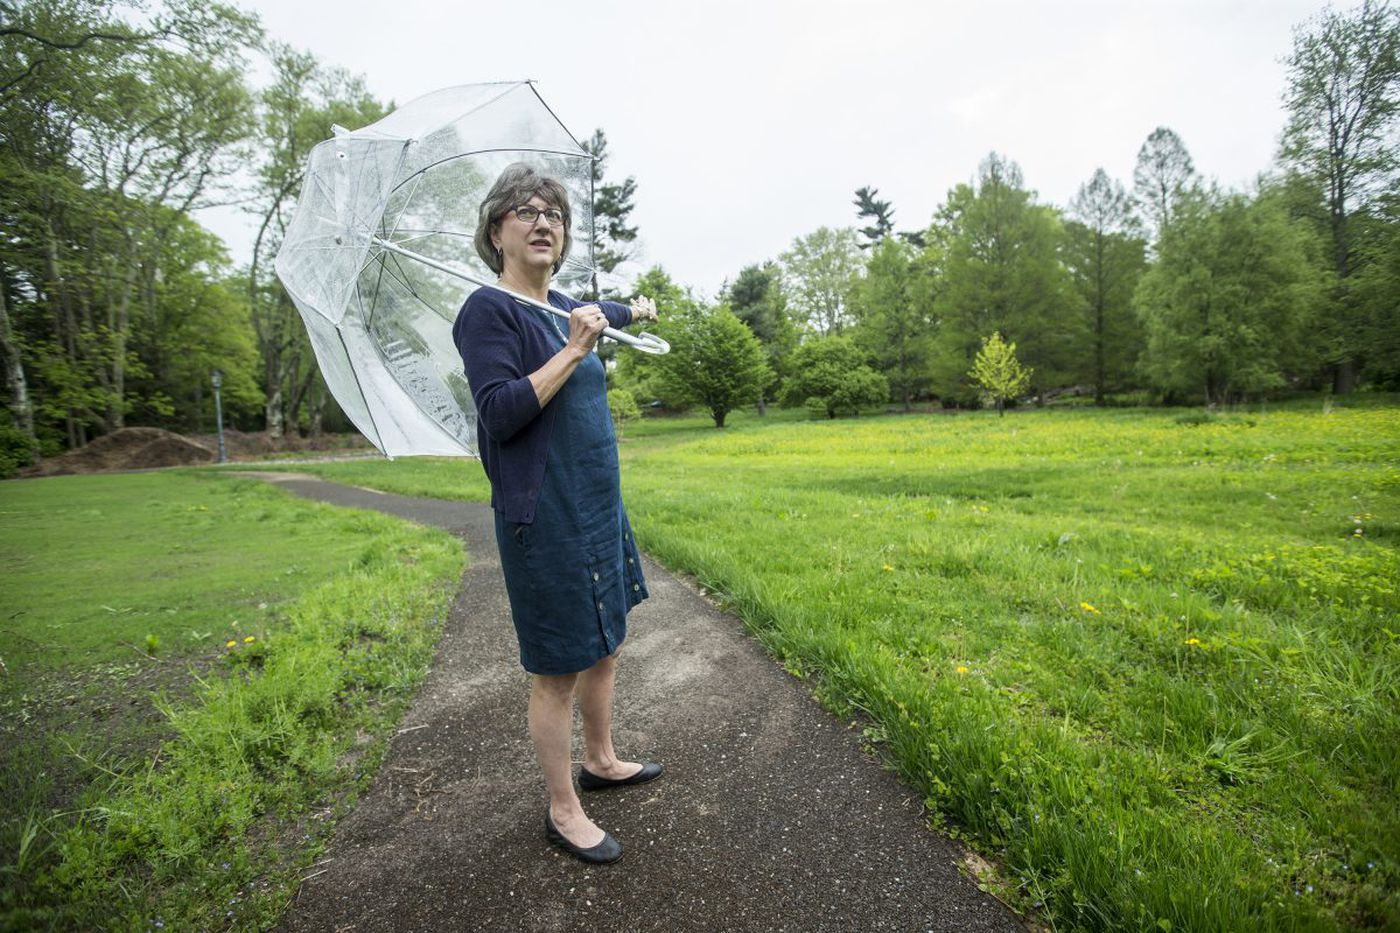 Lower Merion's new public garden already threatened by middle school plan